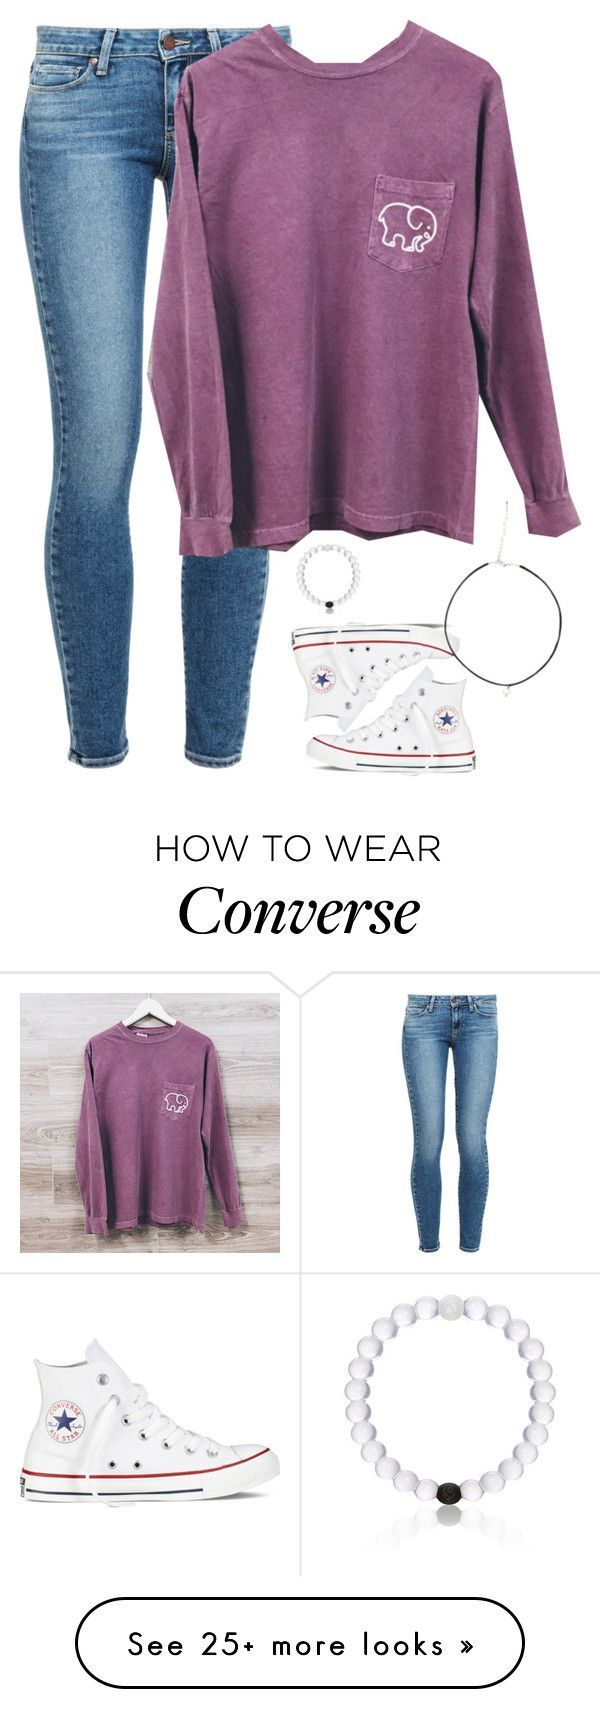 """Want this shirt!!~ how's the new setup?"" by meljordrum on Polyvore featuring…"